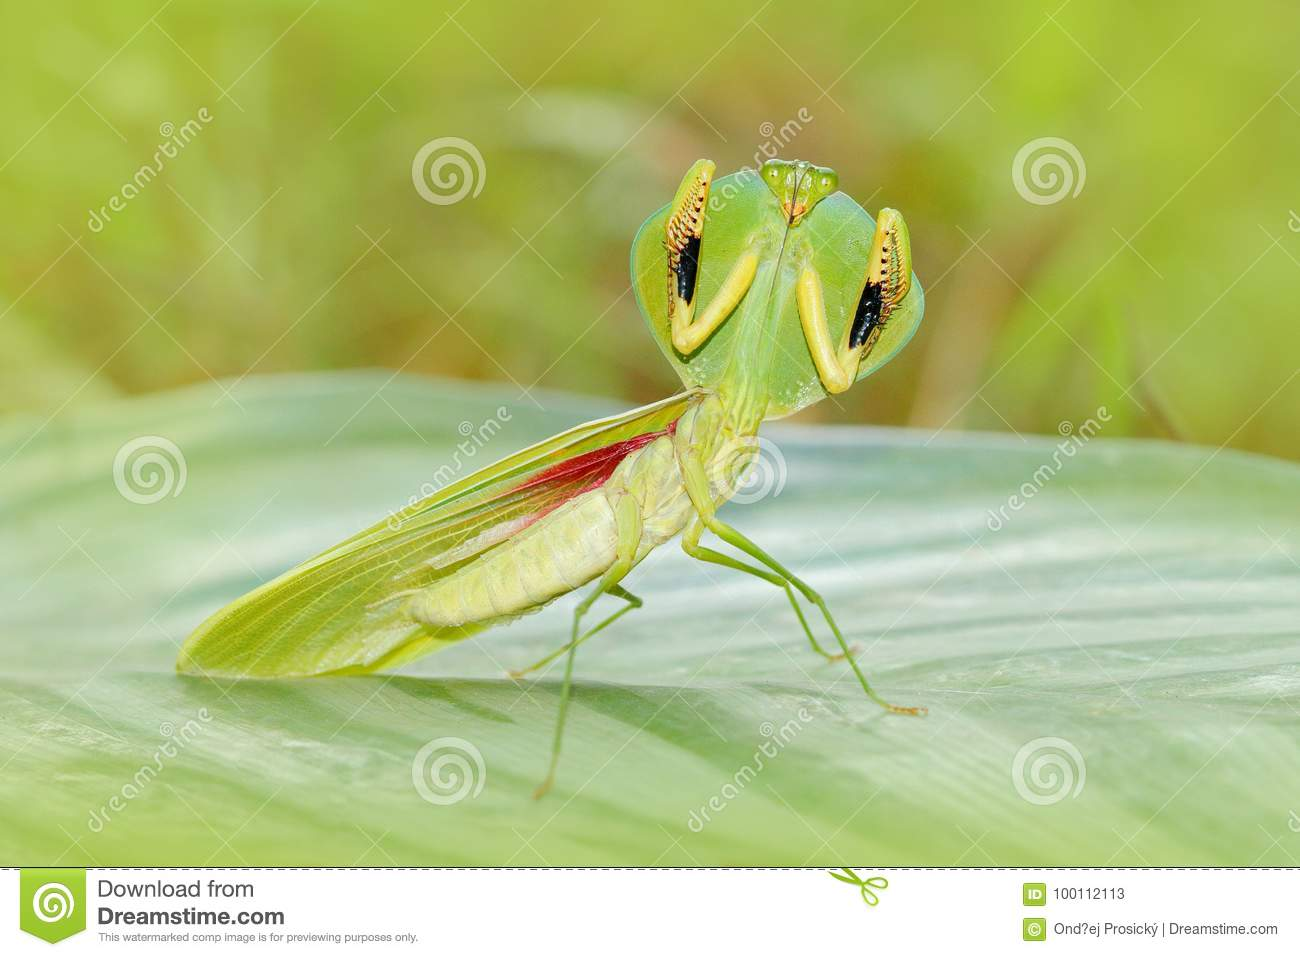 Insect hunter in the nature. Leaf Mantid, Choeradodis rhombicollis, insect from Ecuador. Beautiful evening back light with wild an